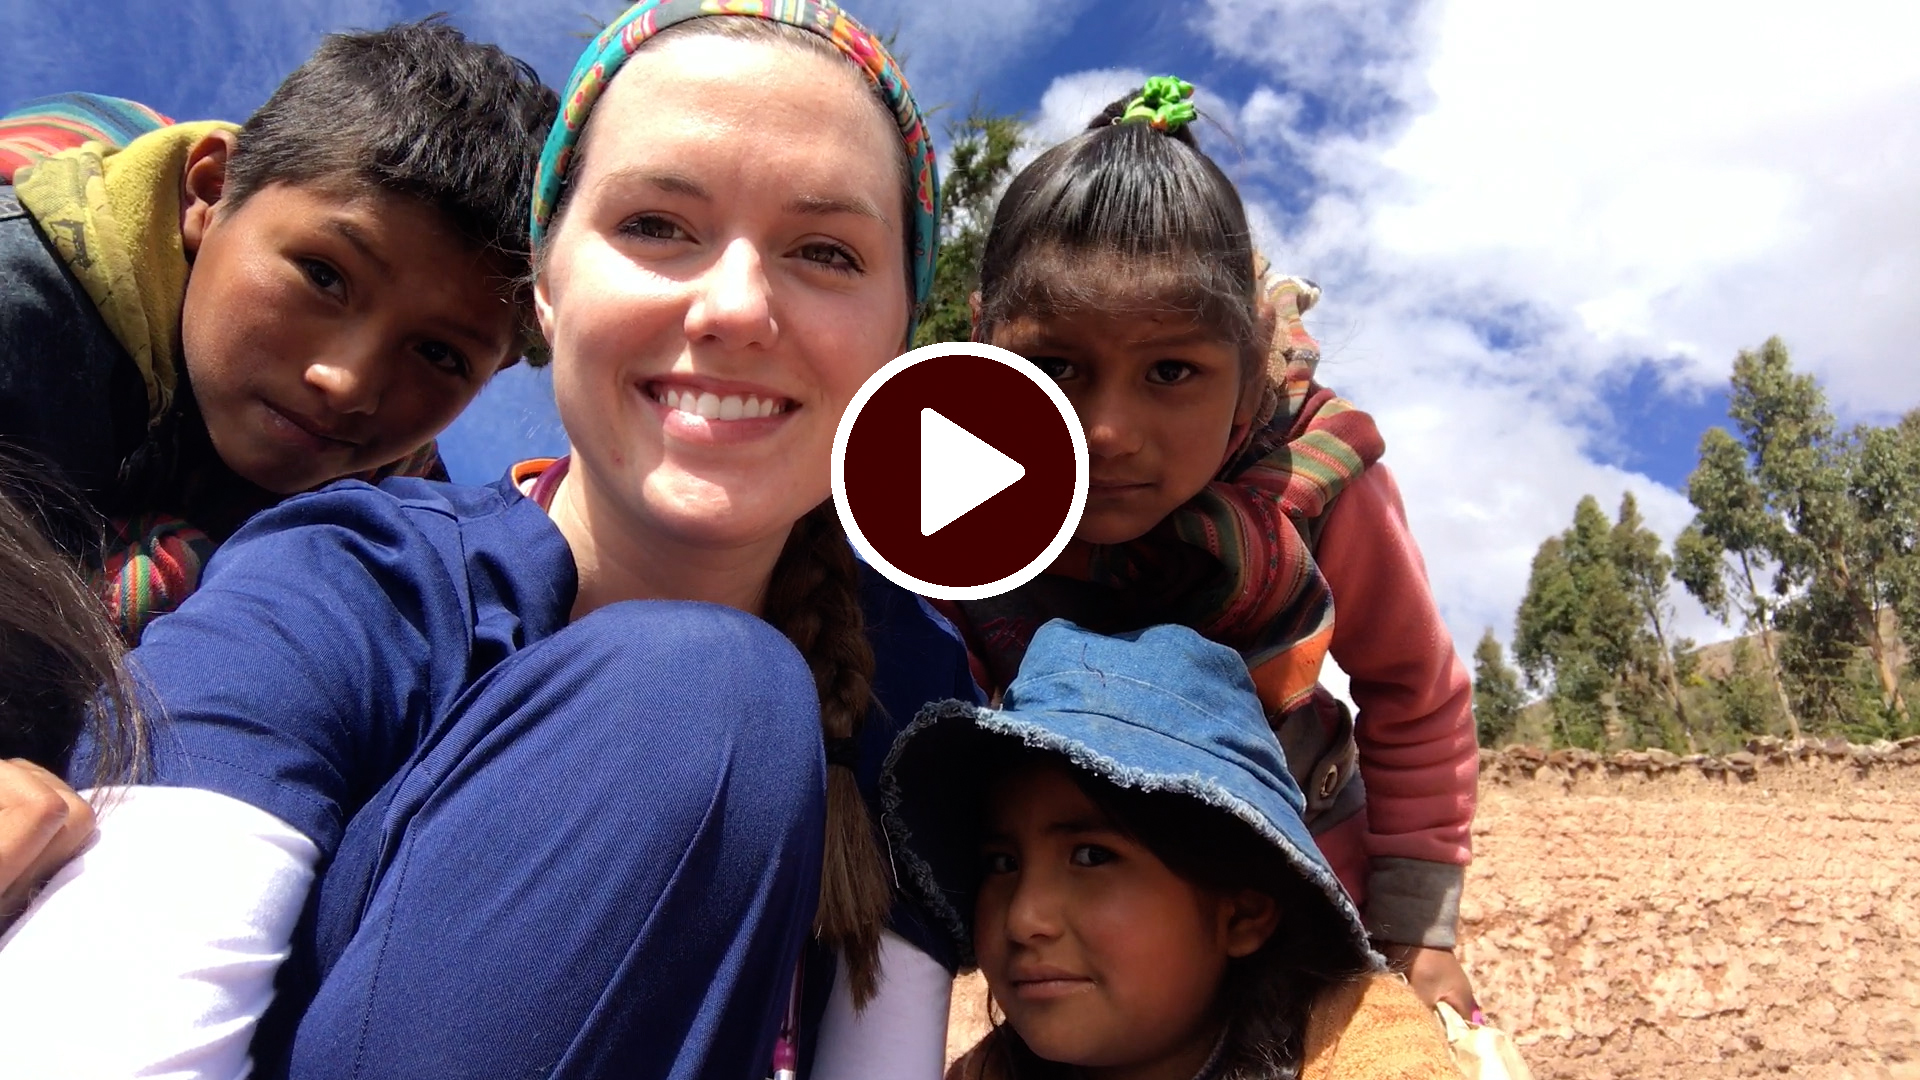 Watch the video: A group of inter-disciplinary Health Science Center students deliver care to the remote village of Quesimpuco, Bolivia.